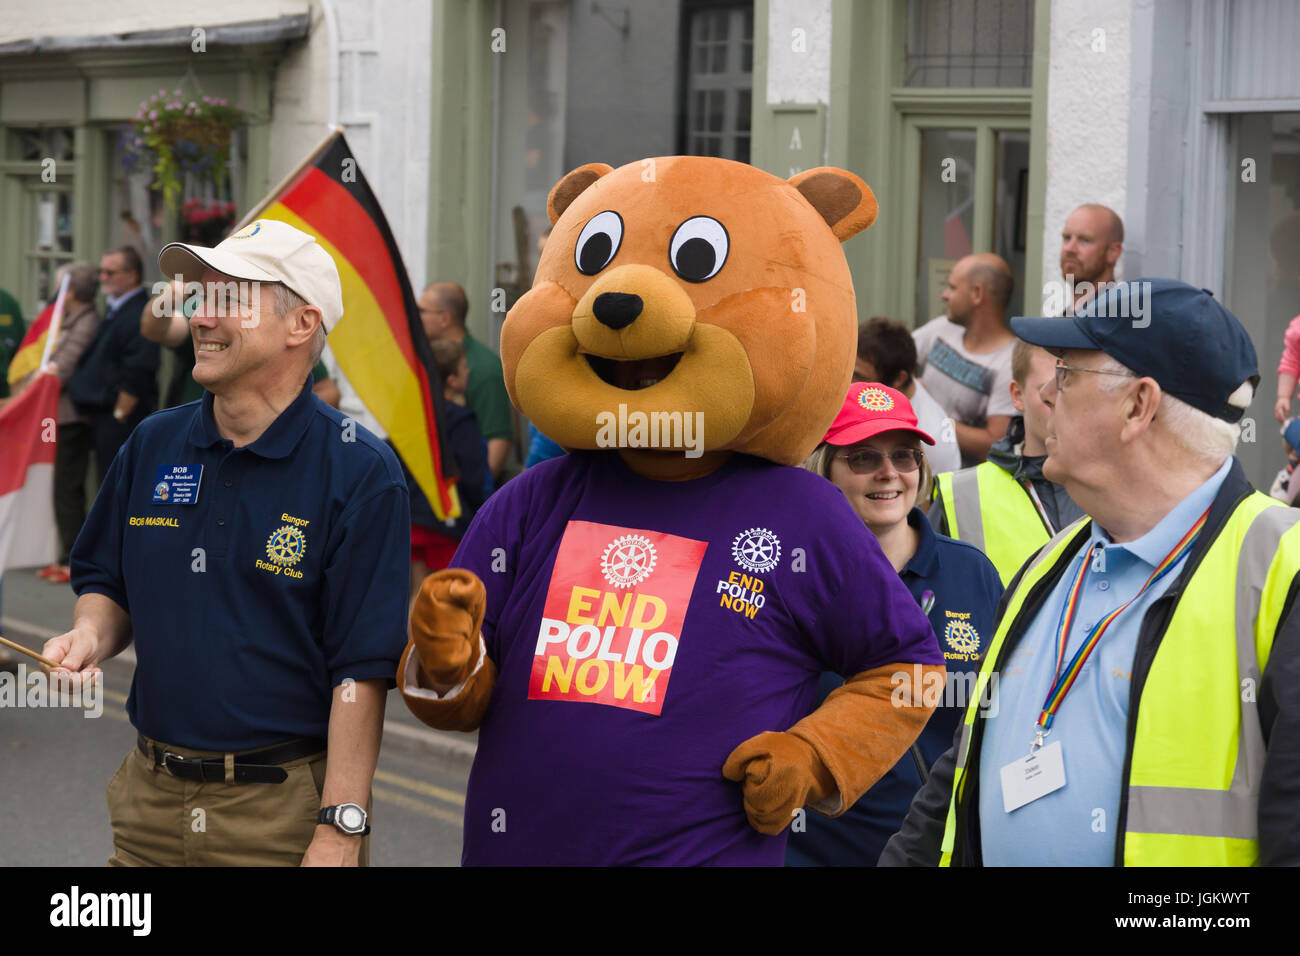 Rotary Club members taking part in a street parade to highlight the End Polio Now campaign during the International - Stock Image